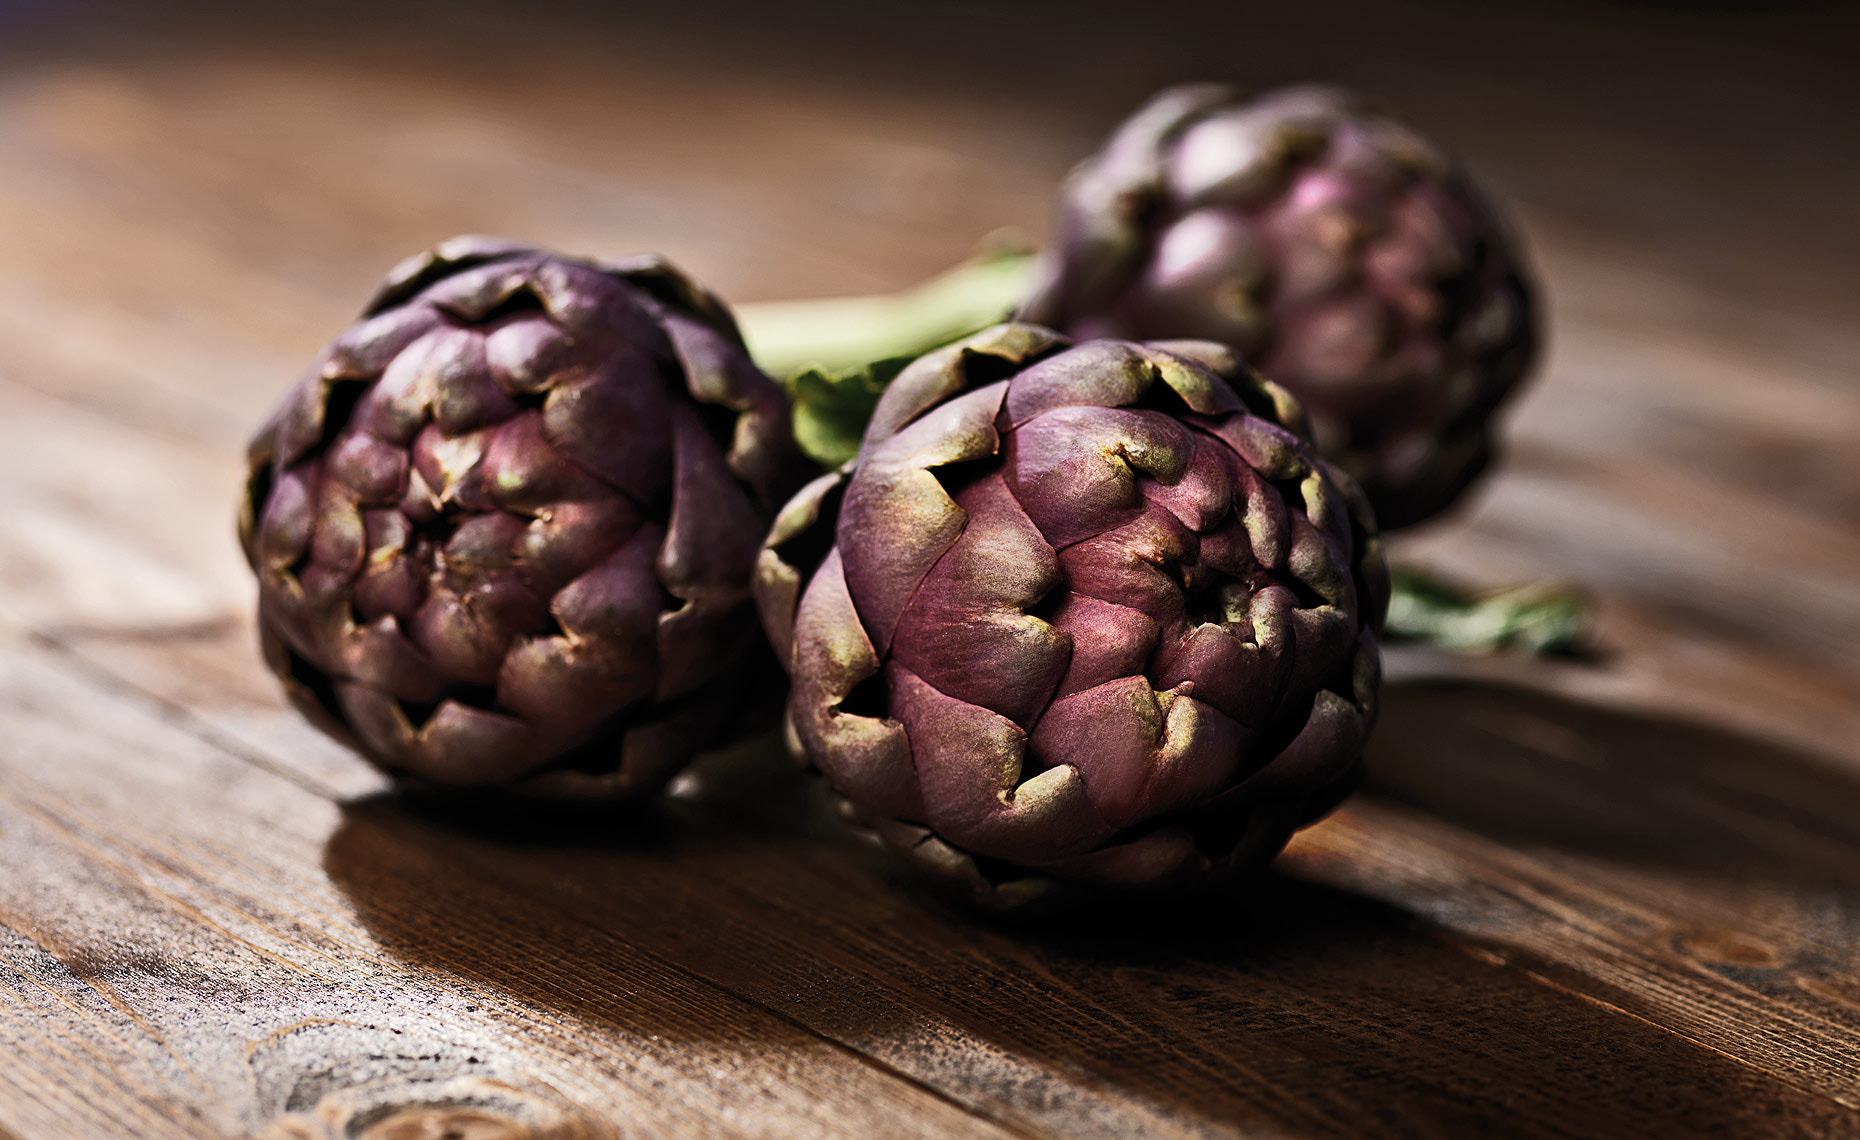 Photograph Artichokes by Studio  Blu 2.0 on 500px